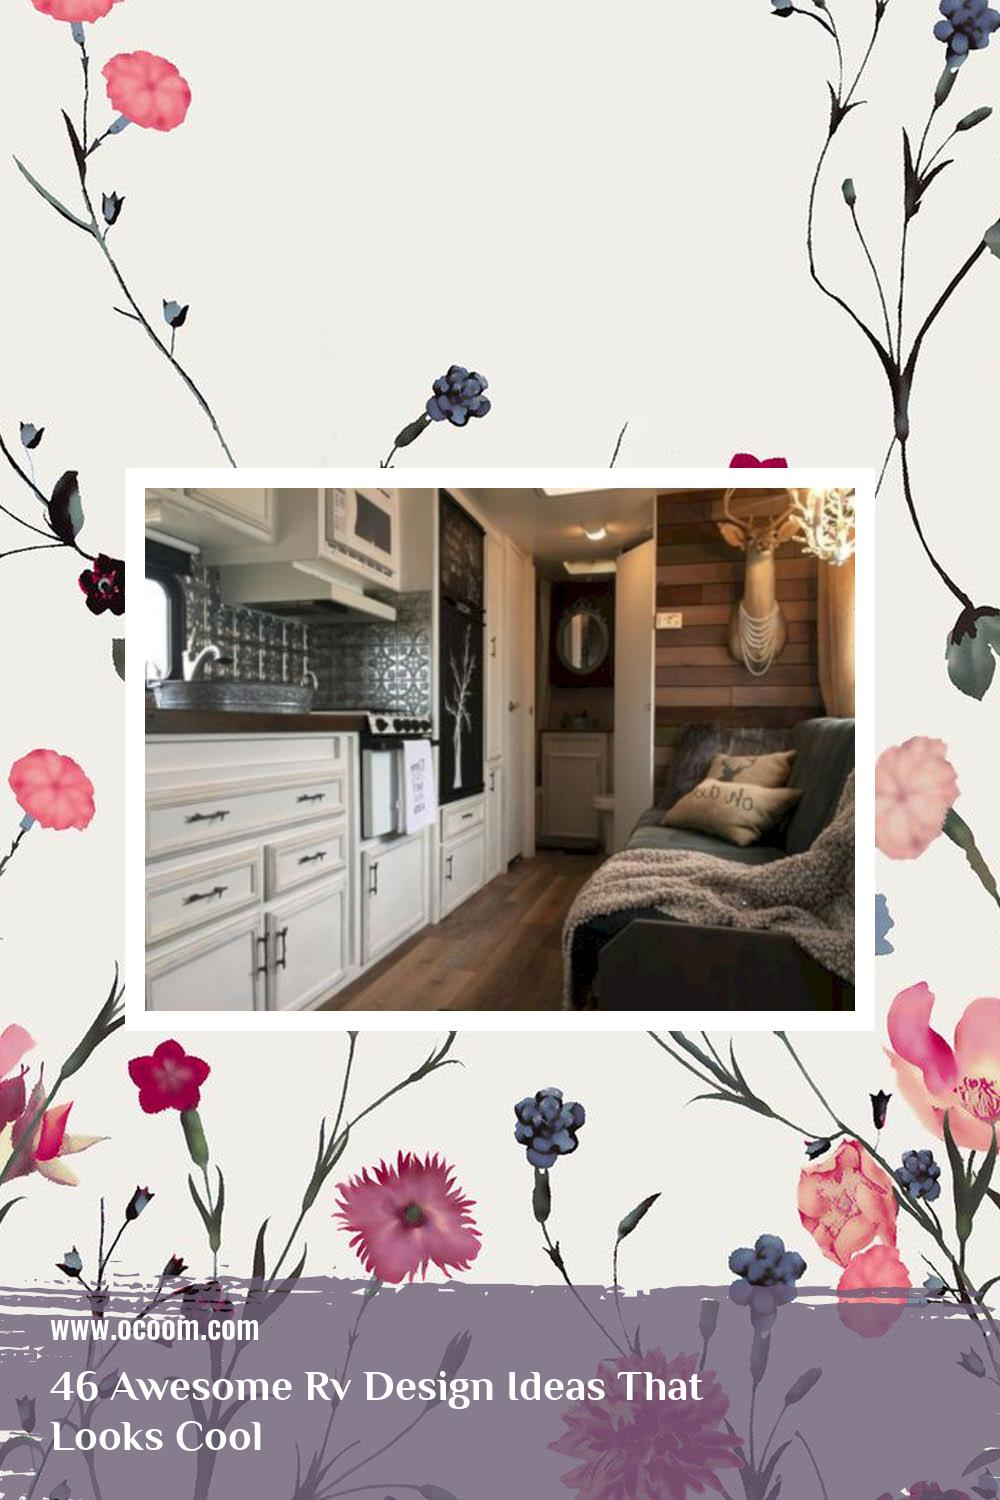 46 Awesome Rv Design Ideas That Looks Cool 33